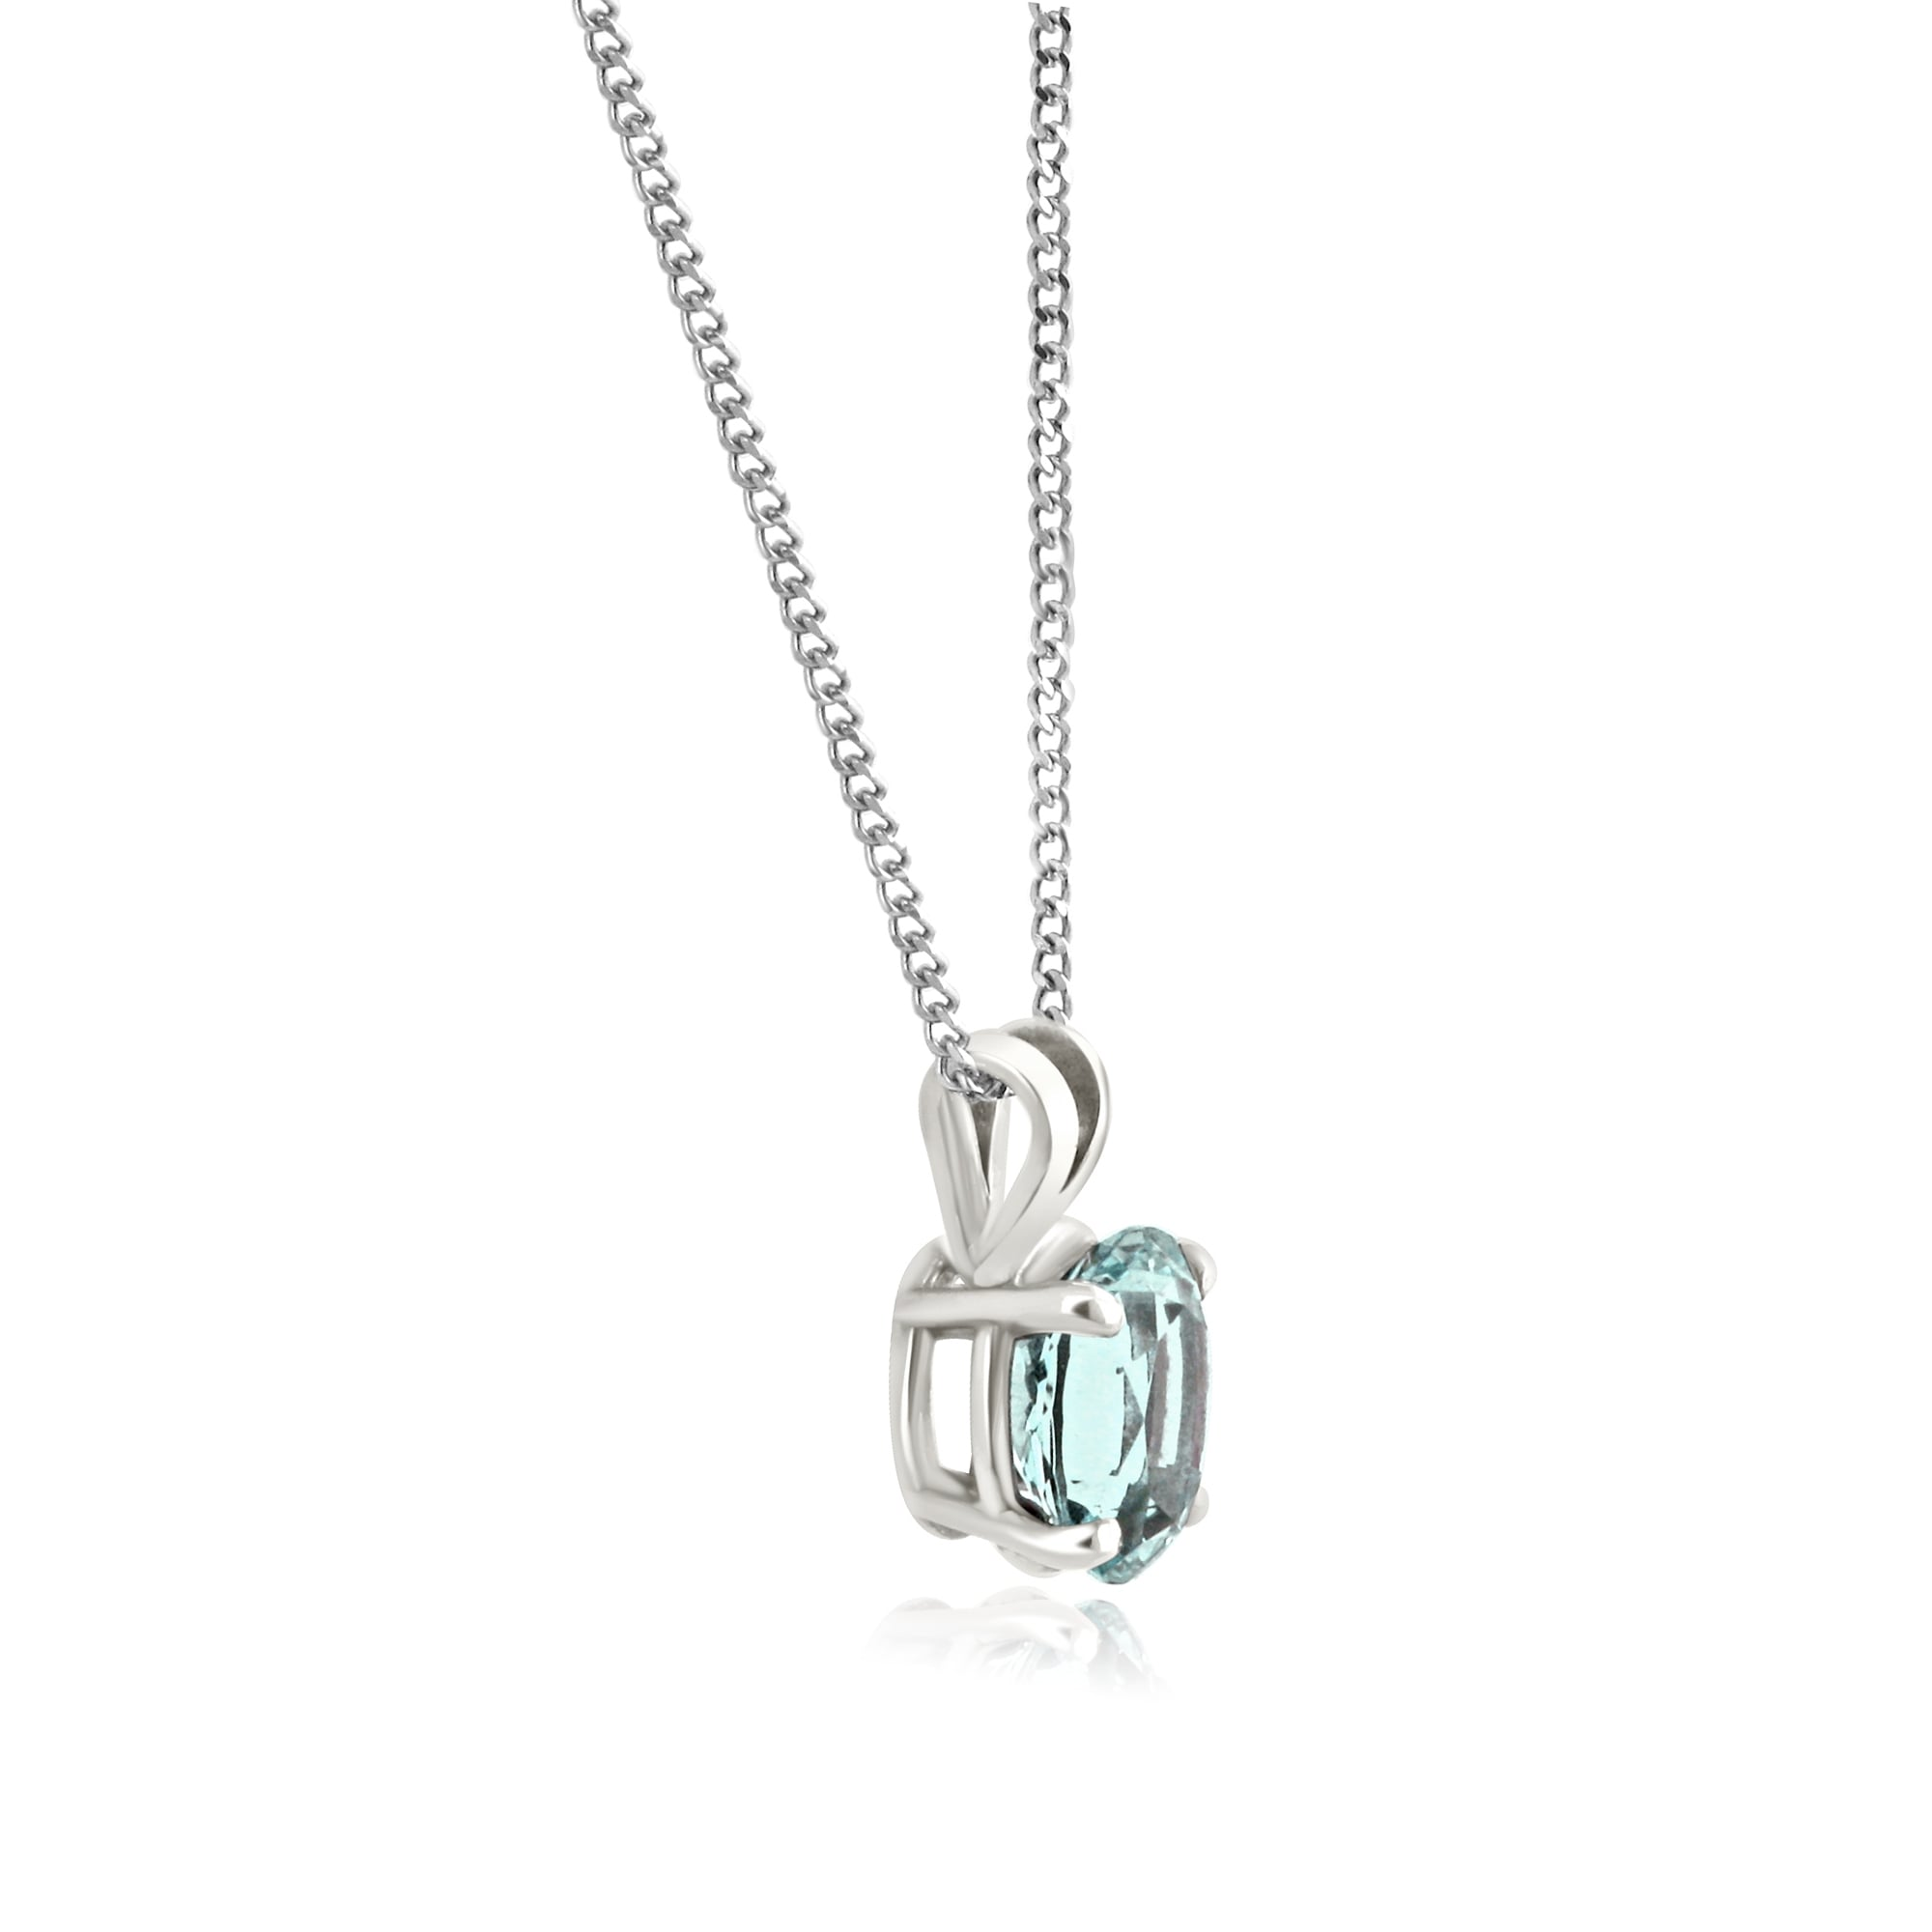 clasp at aquamarine id jewelry diamond pendant open j gold with more necklaces close org for sale